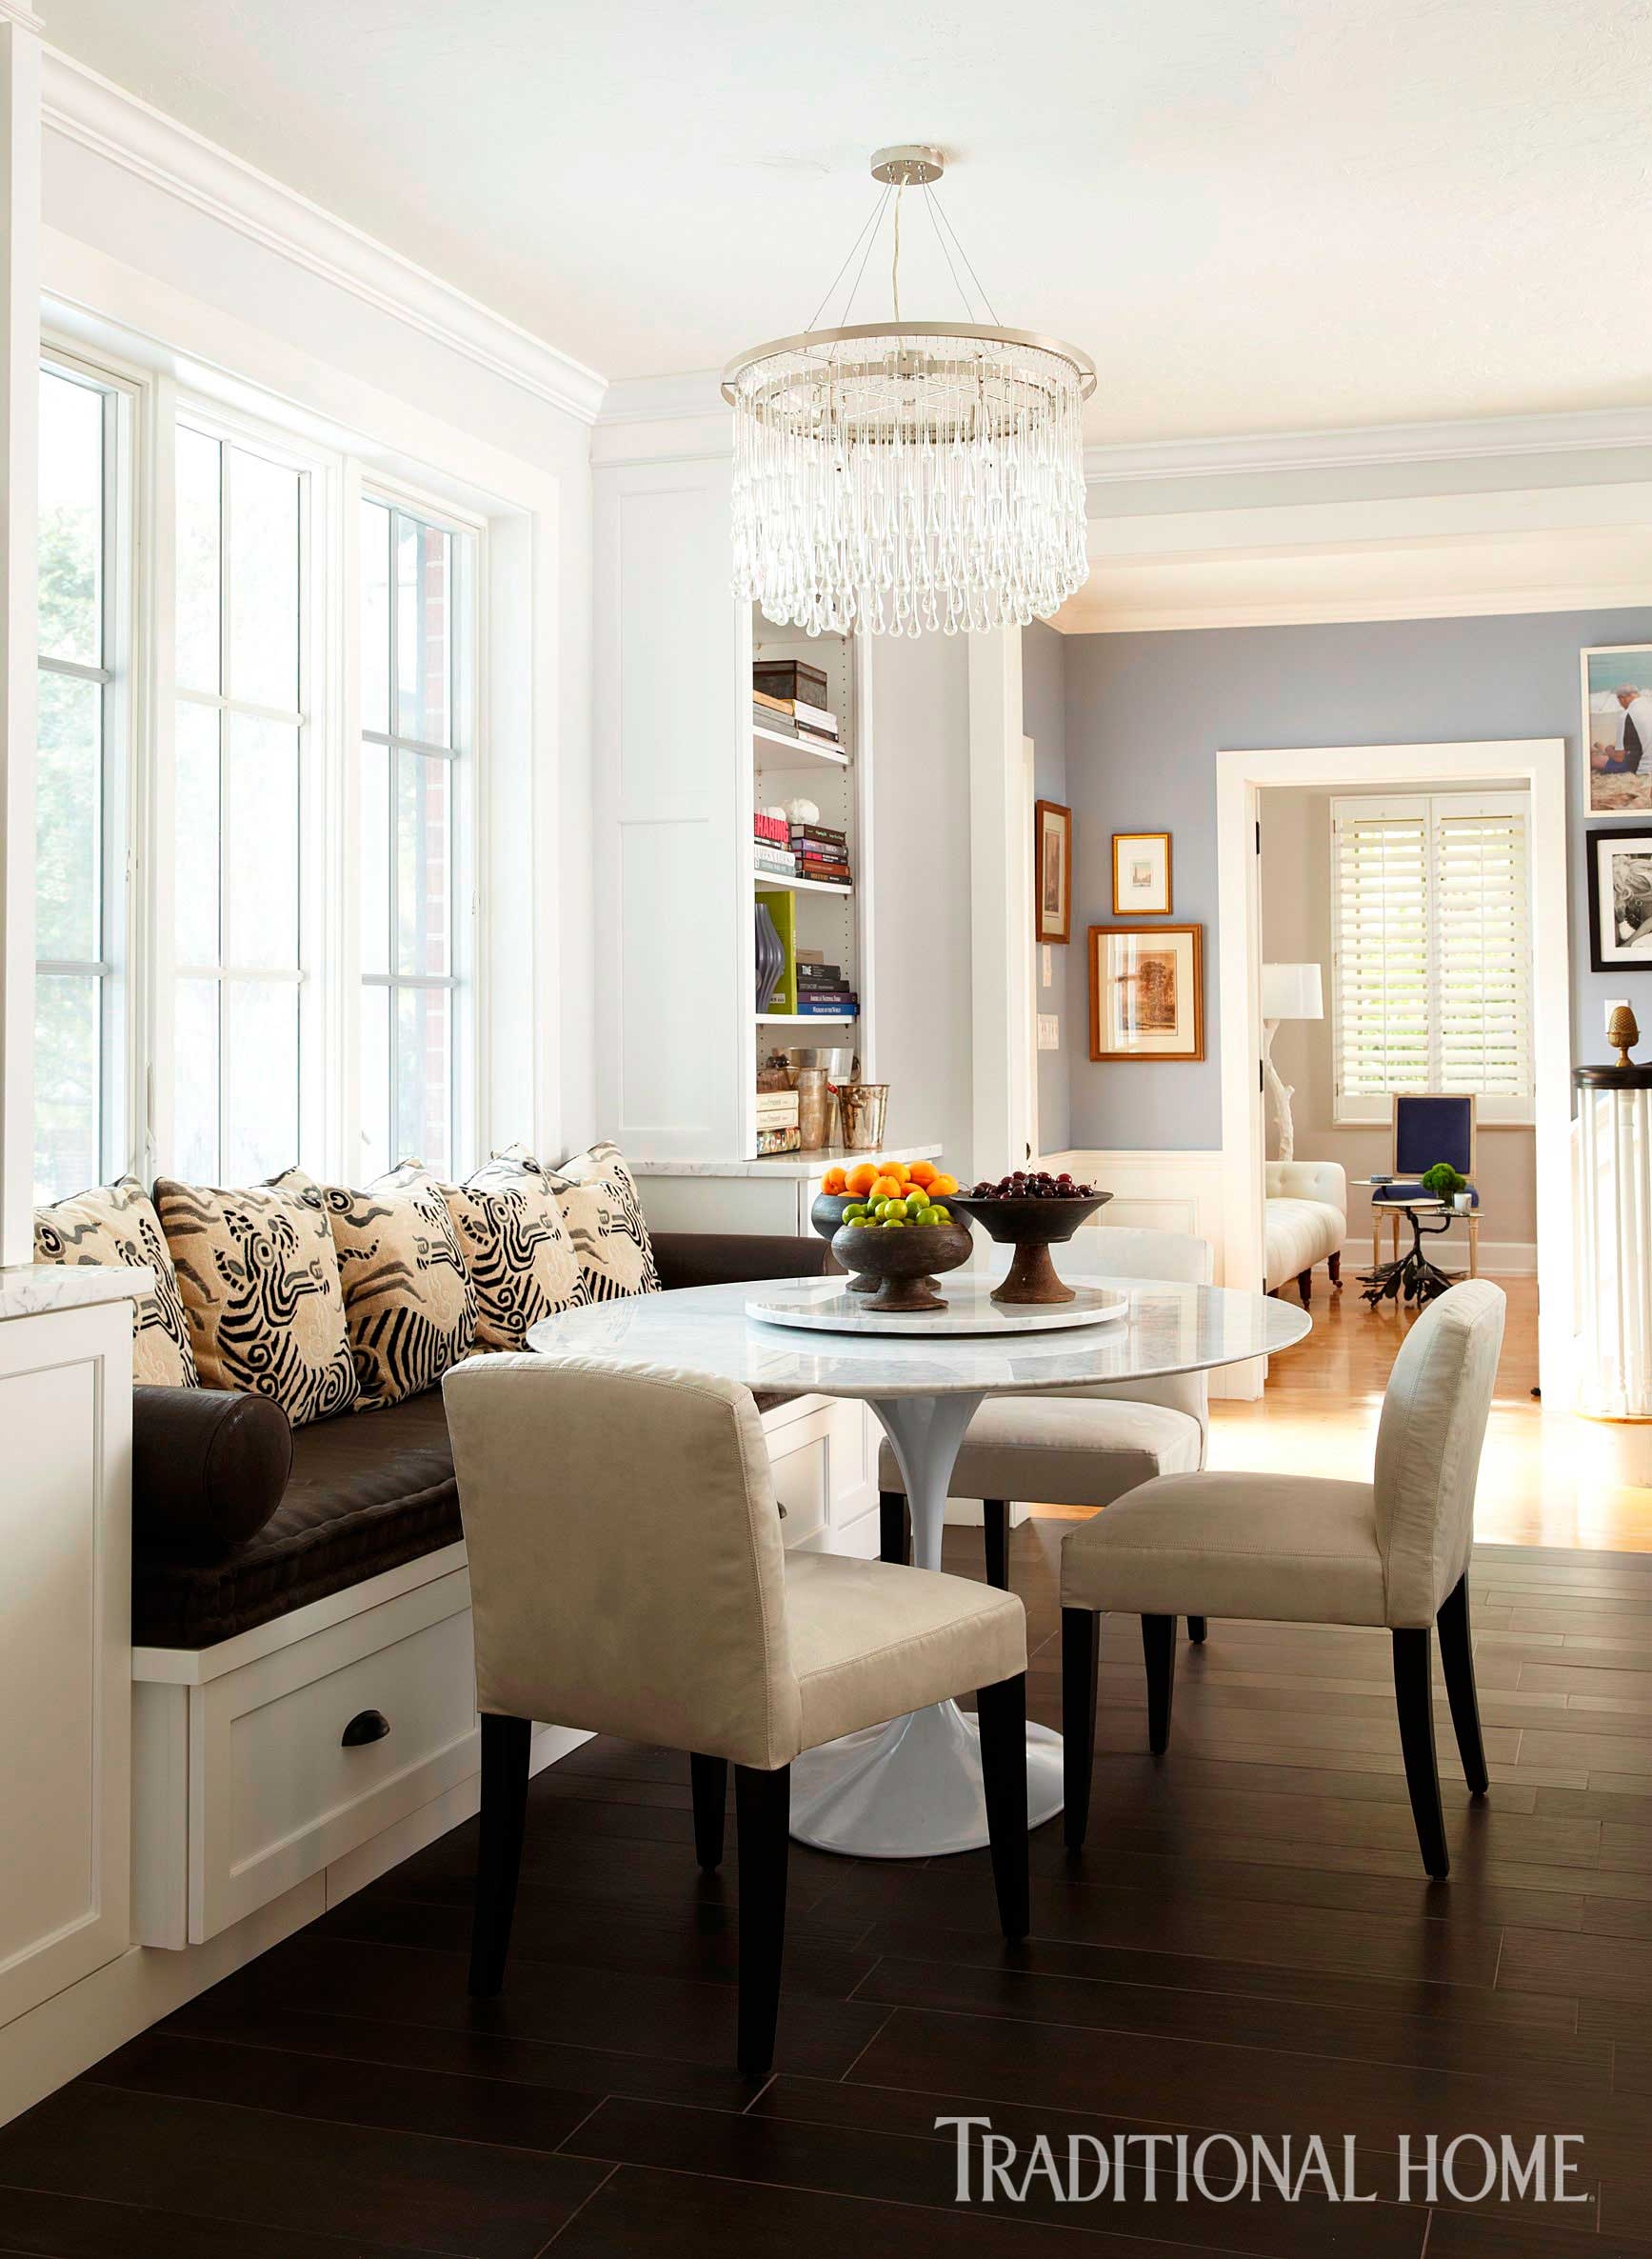 Easy Elegance in a Year-Round Florida Home | Traditional Home